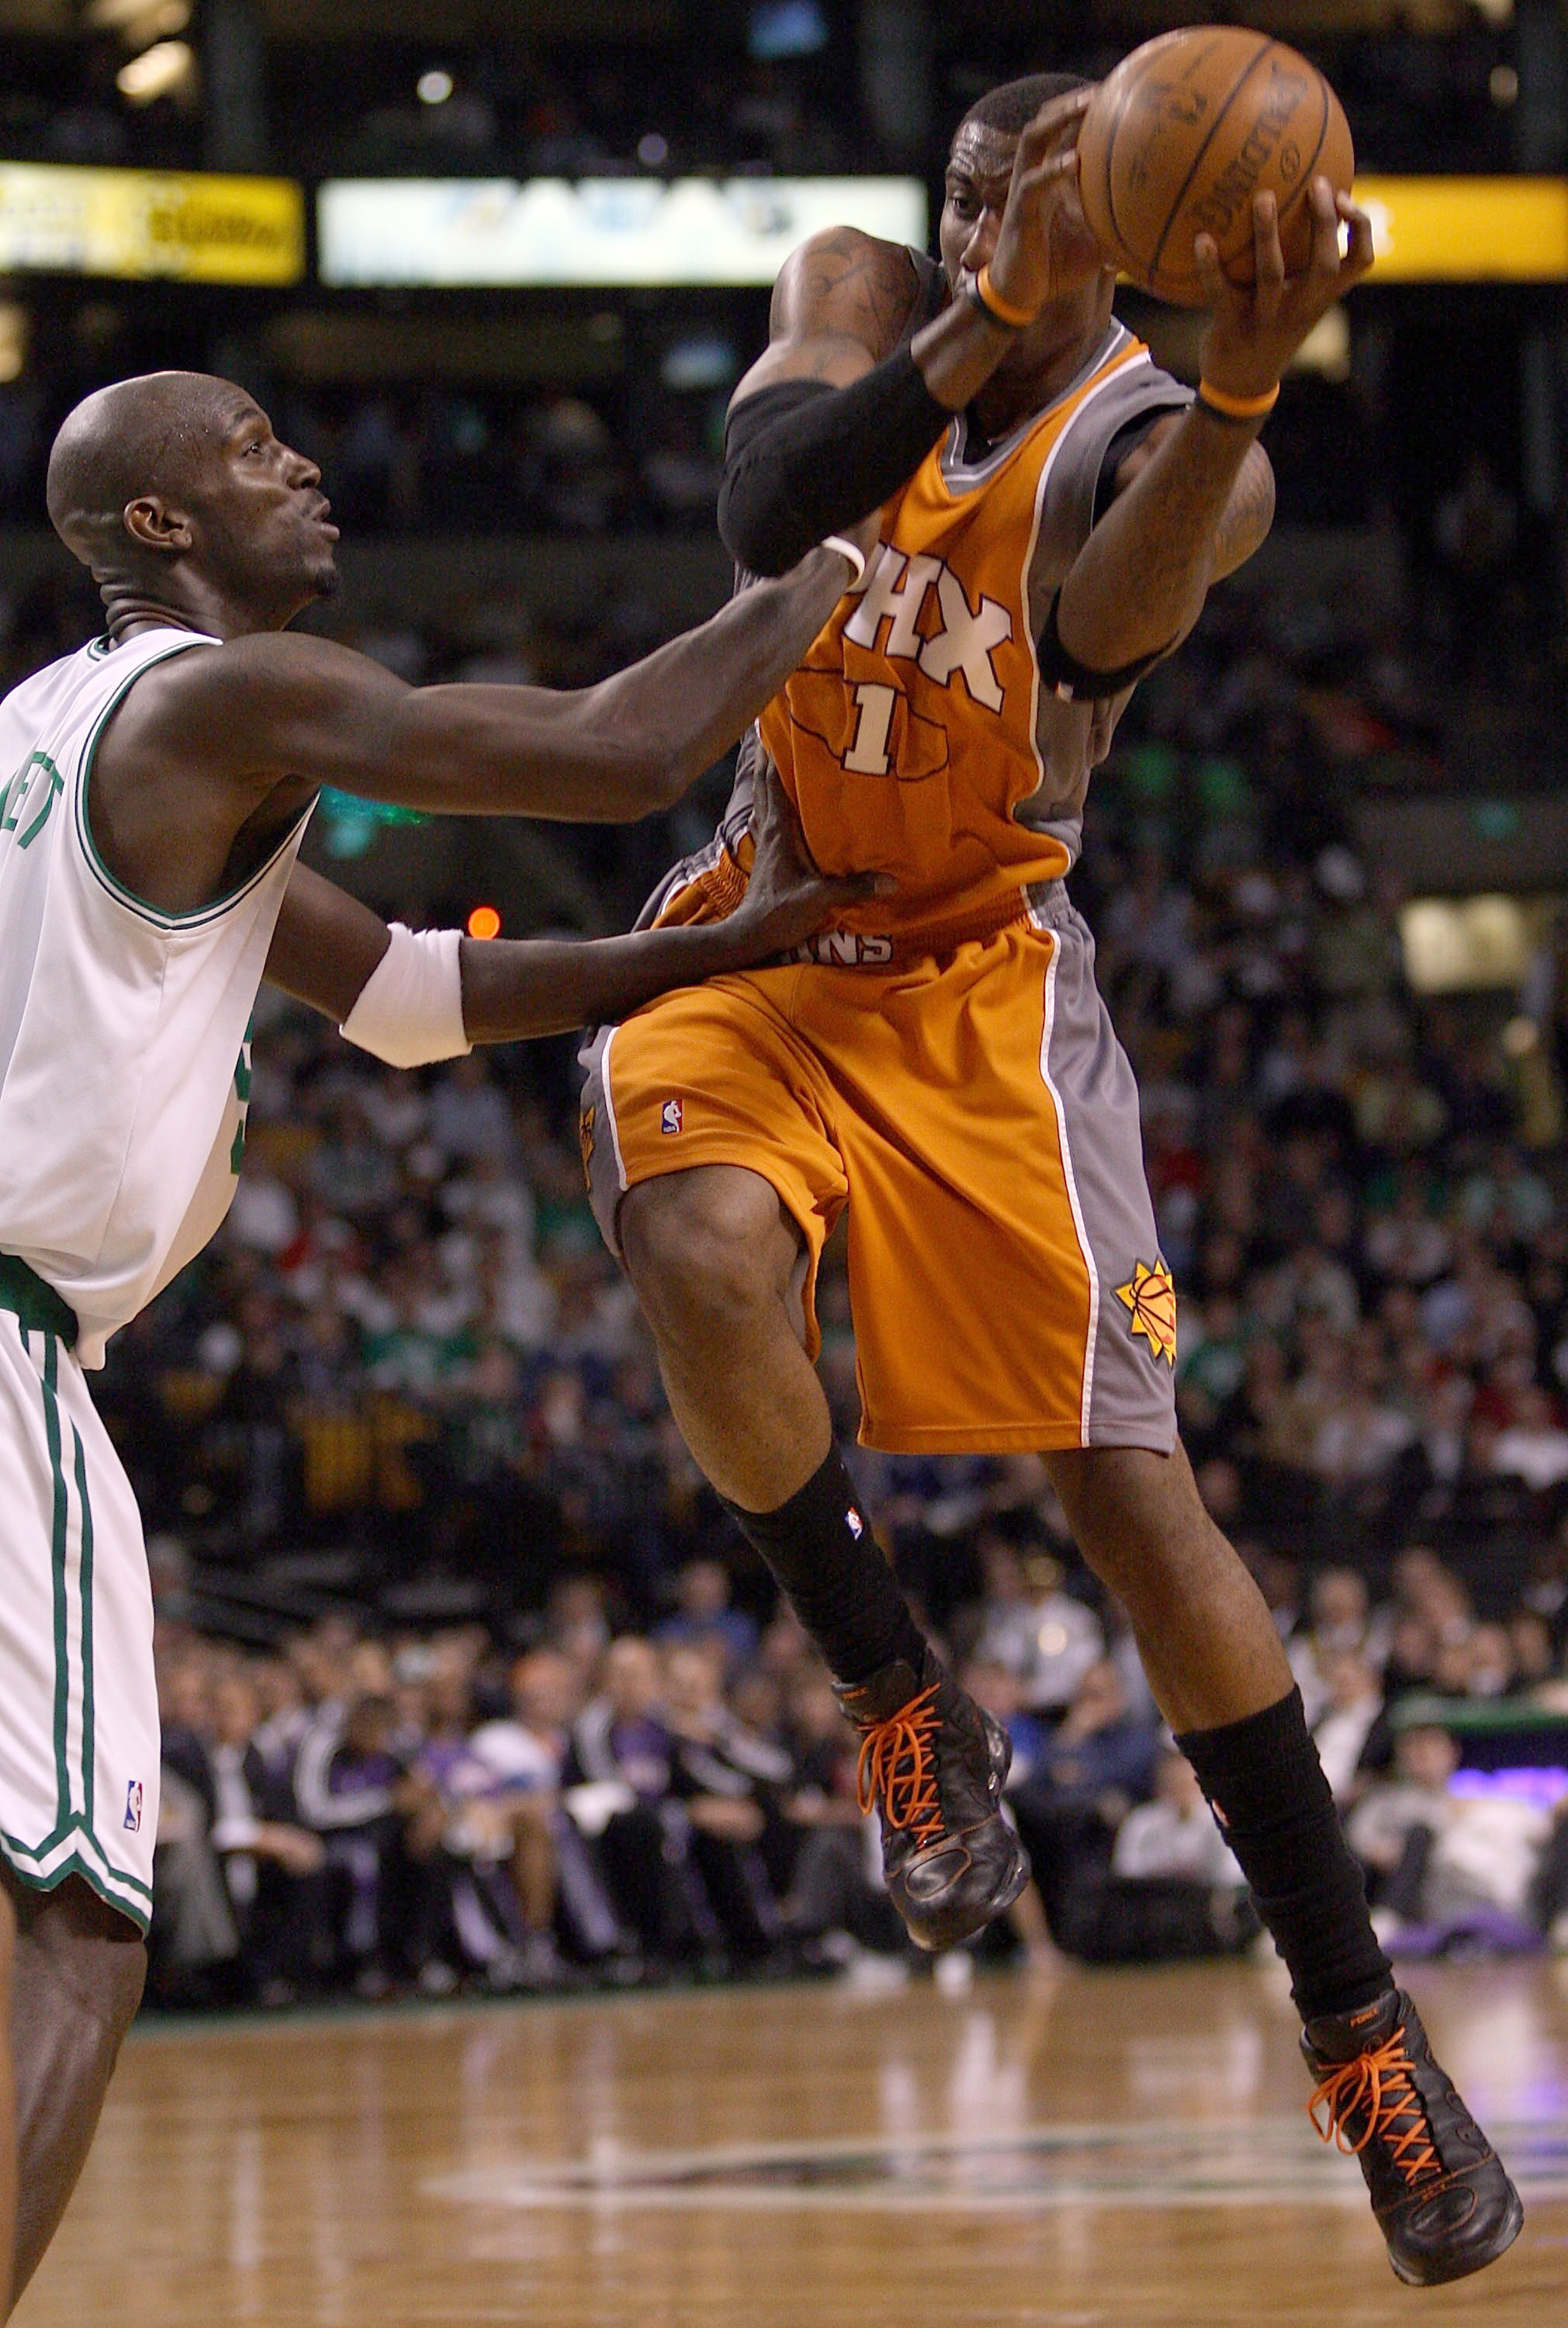 BOSTON - MARCH 26:  Kevin Garnett #5 of the Boston Celtics is unable to nab the loose ball as Amare Stoudemire #1 of the Phoenix Suns catches it on March 26, 2008 at the TD Banknorth Garden in Boston, Massachusetts. The Celtics defeated the Suns 117-97. N